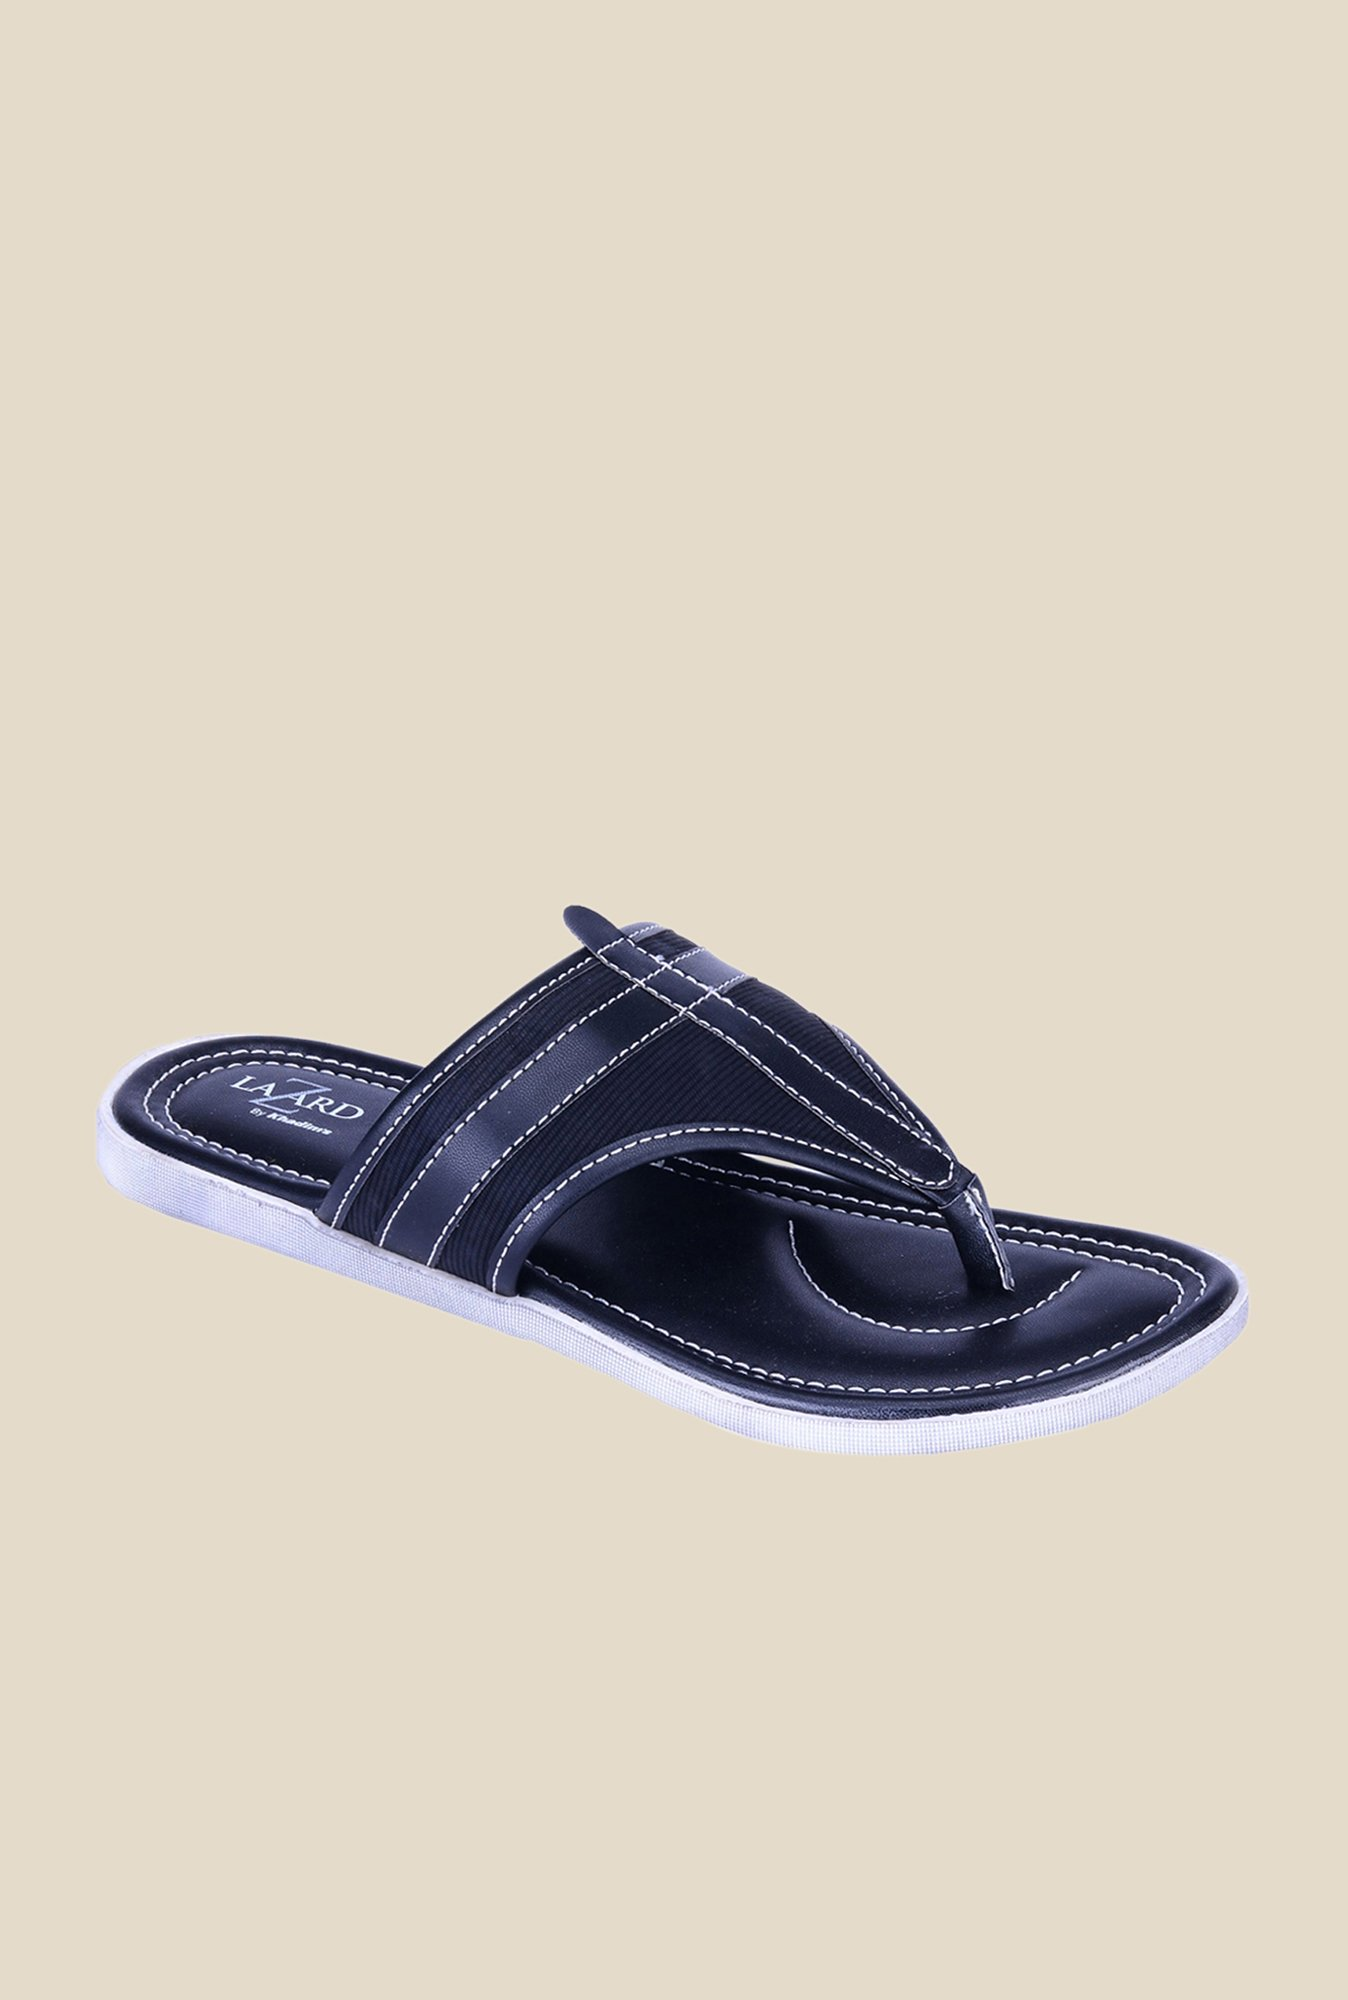 Khadim's Lazard Black T-Strap Sandals